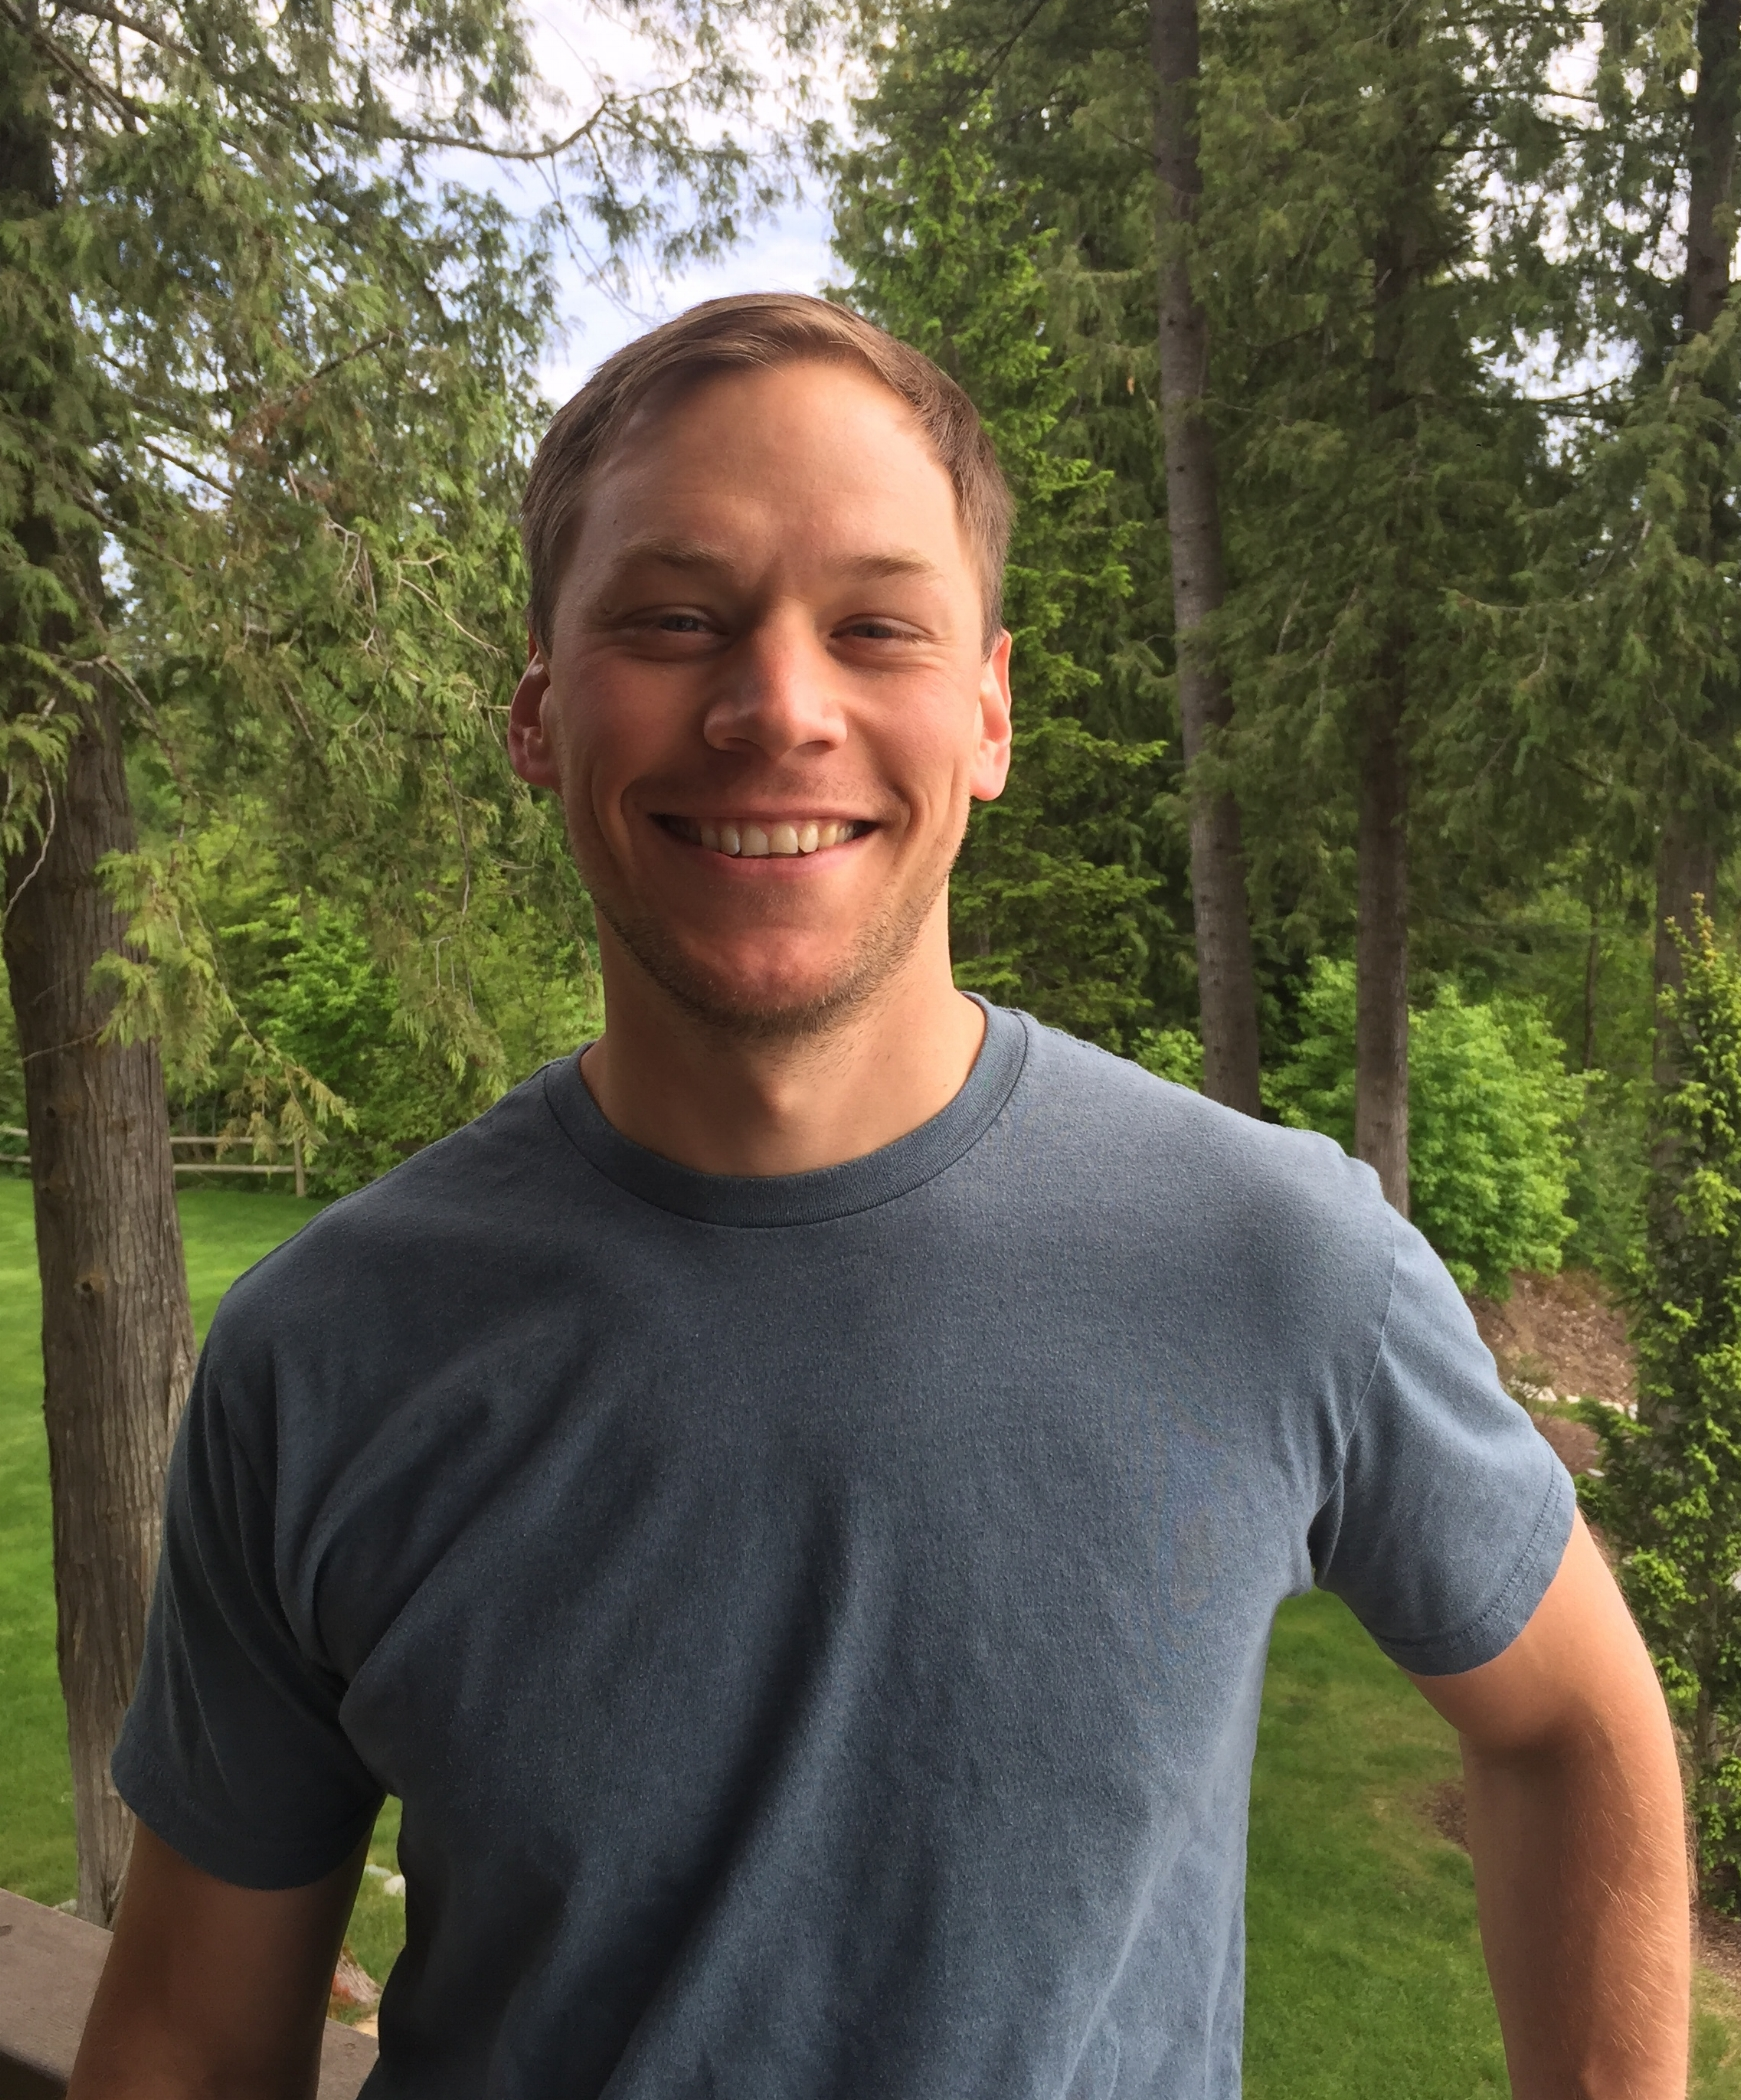 Brief about me - My name is Christopher Joyce and I am a health coach with a functional medicine emphasis. My love and passion for wellness coaching began when I joined the United States Marine Corps in 2007. I was stationed in Okinawa, Japan and deployed to Operation Enduring Freedom in 2009 where I led and mentored Marines. I was greatly inspired by my fellow Marines as we grew personally and professionally together, encouraging each other to live better lives. From there, I have been taking those concepts of lifestyle growth and improvement to my friends, family, co-workers, hockey teammates, and my lacrosse team that I coach. In 2017 I discovered the Functional Medicine Coaching Academy health coaching certification program. I joined their training as soon as I could to further promote health and wellness to those seeking it. As you'll see, I fully embrace